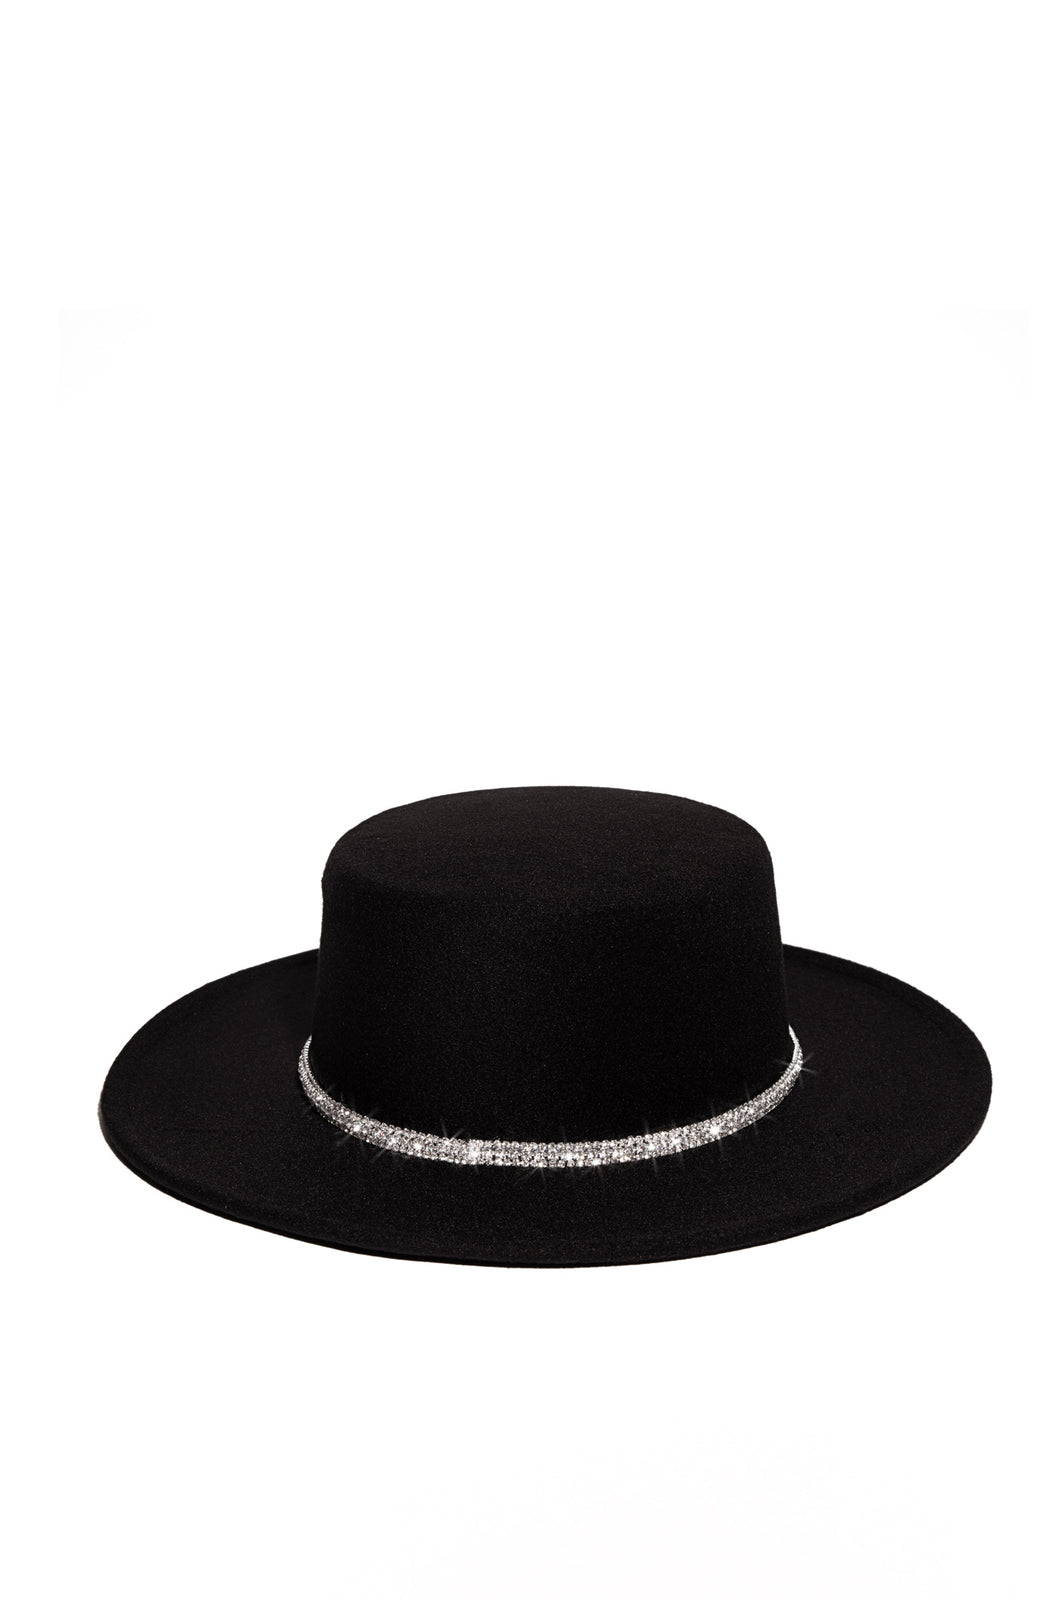 Over The Top Hat - Black